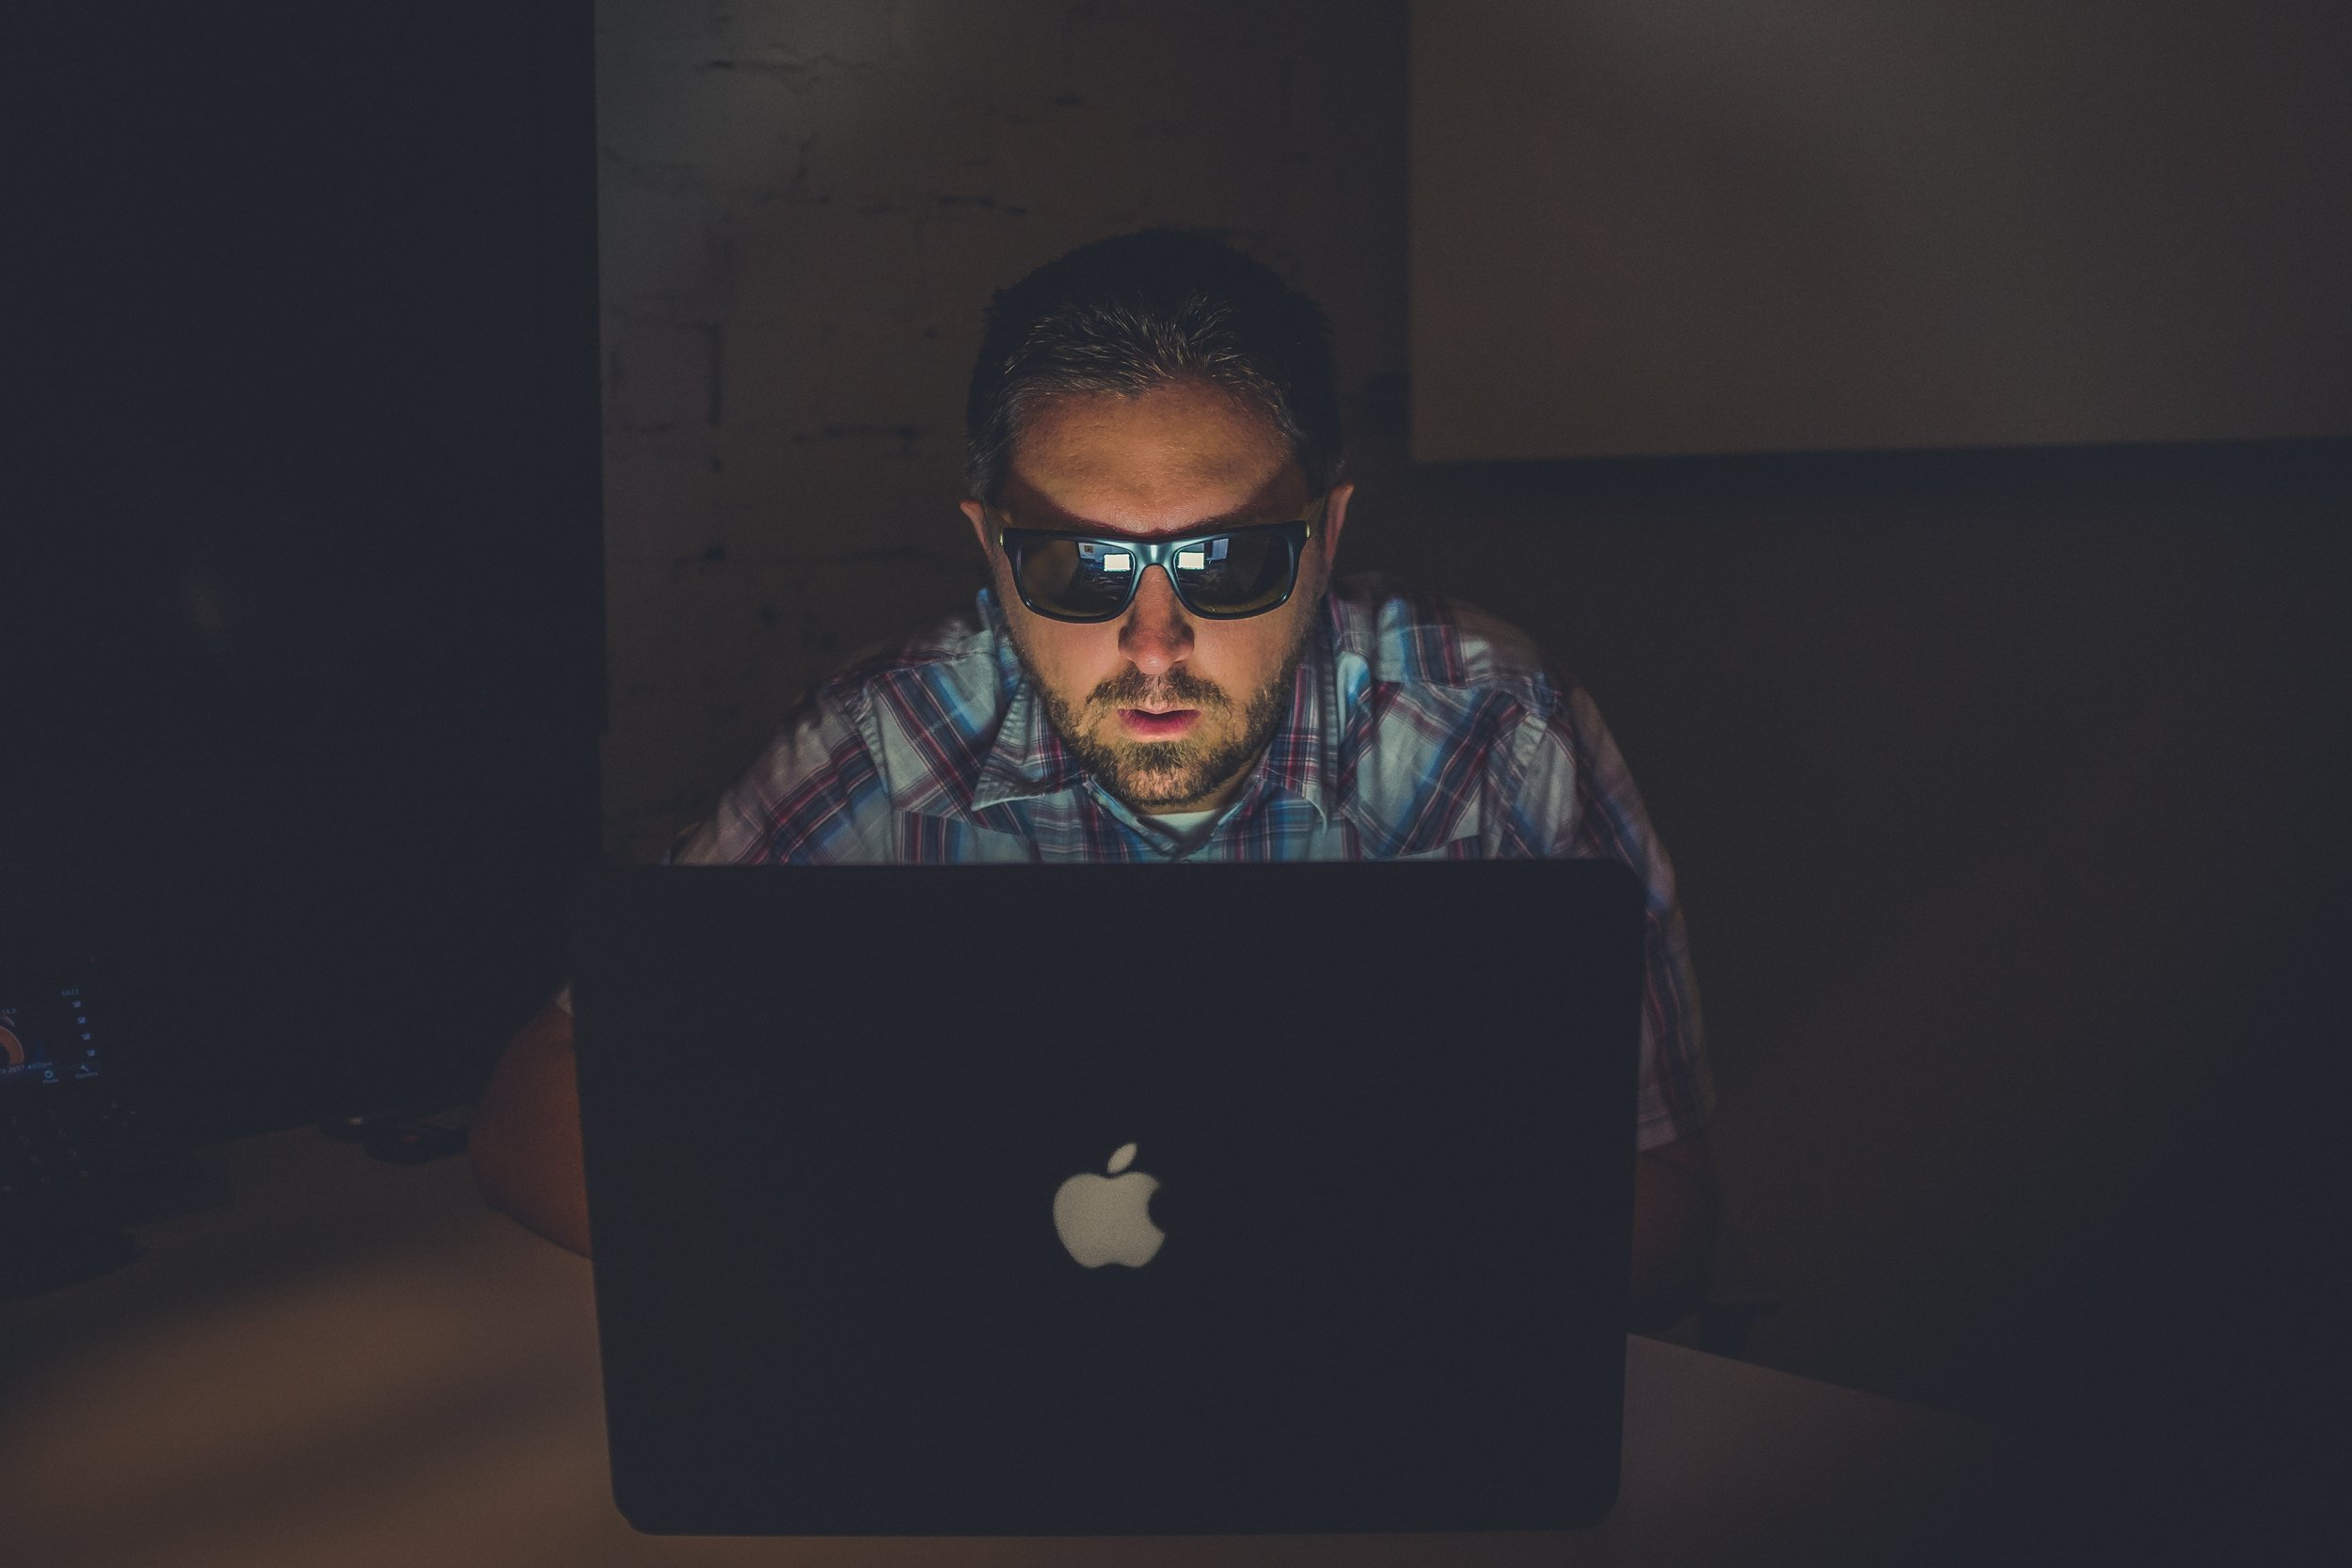 Wearing sunglasses in a dark room while all type-y click-y, the hallmark of a hacker. (Photo by    NeONBRAND    on    Unsplash   )